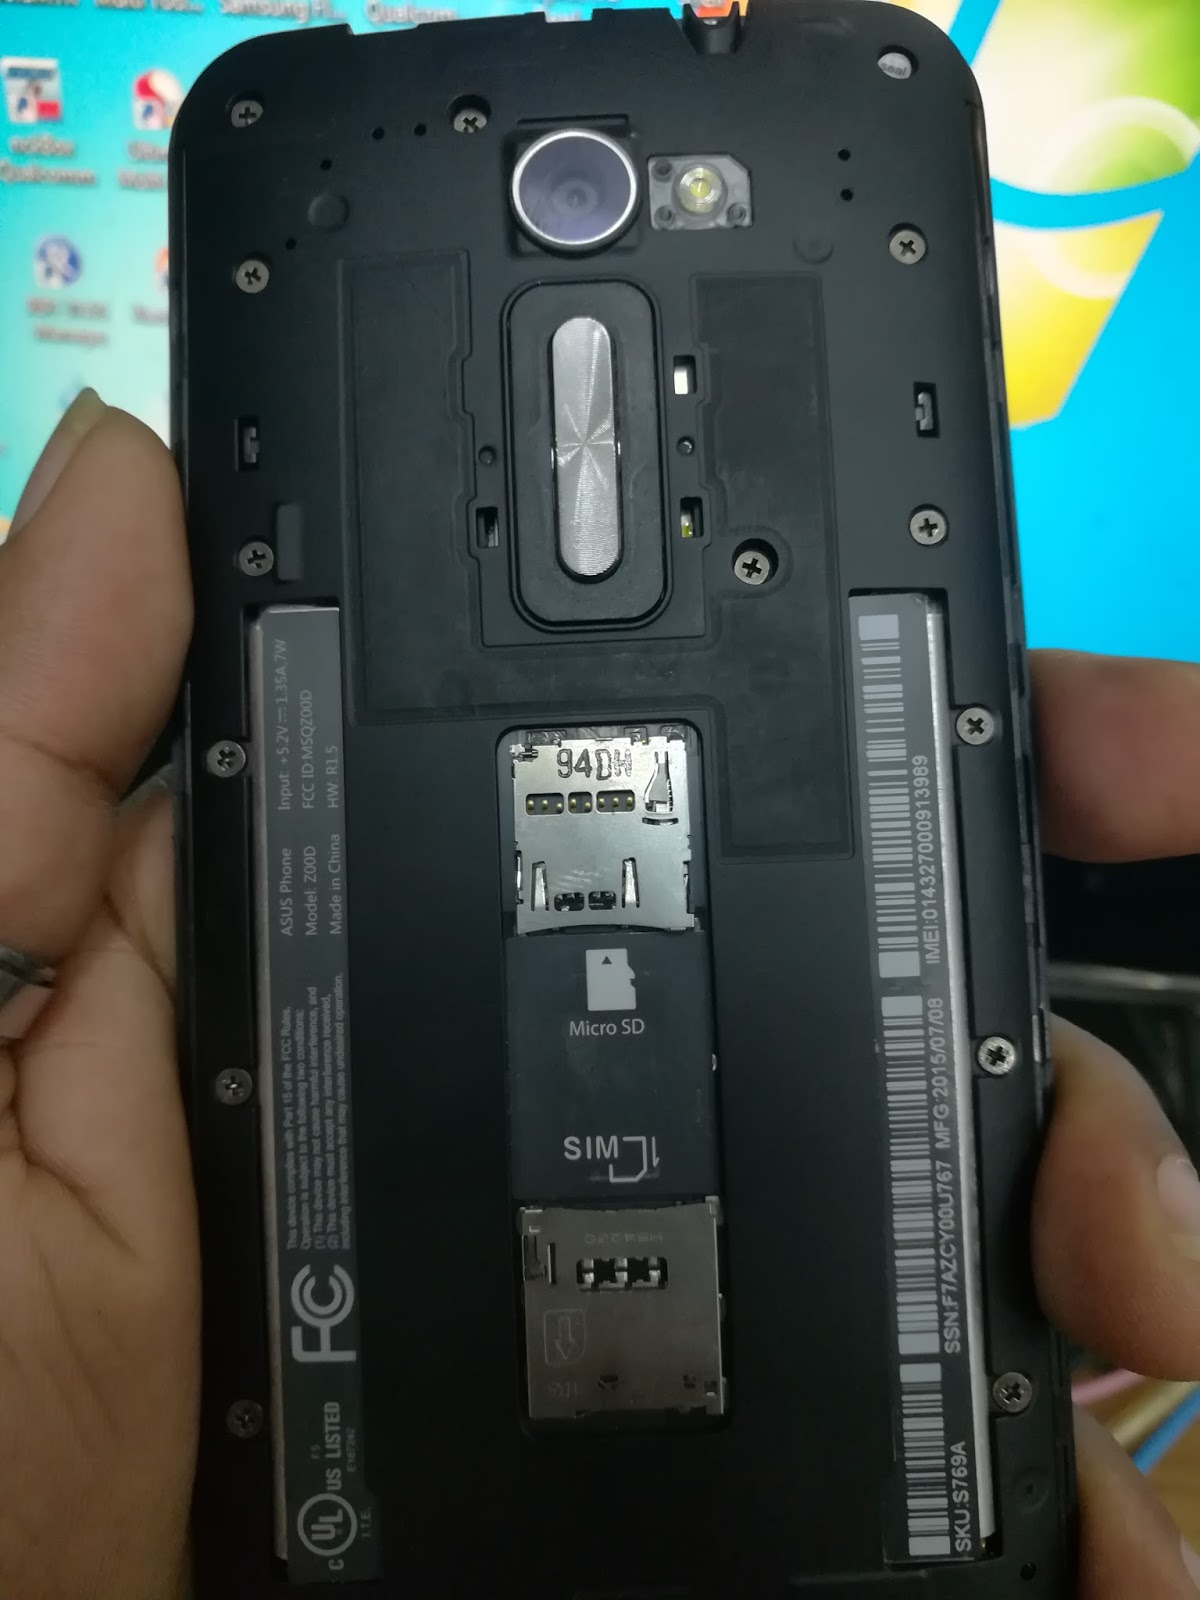 ASUS Z00D Flash File Firmware (SD Card File) - Clean Rom